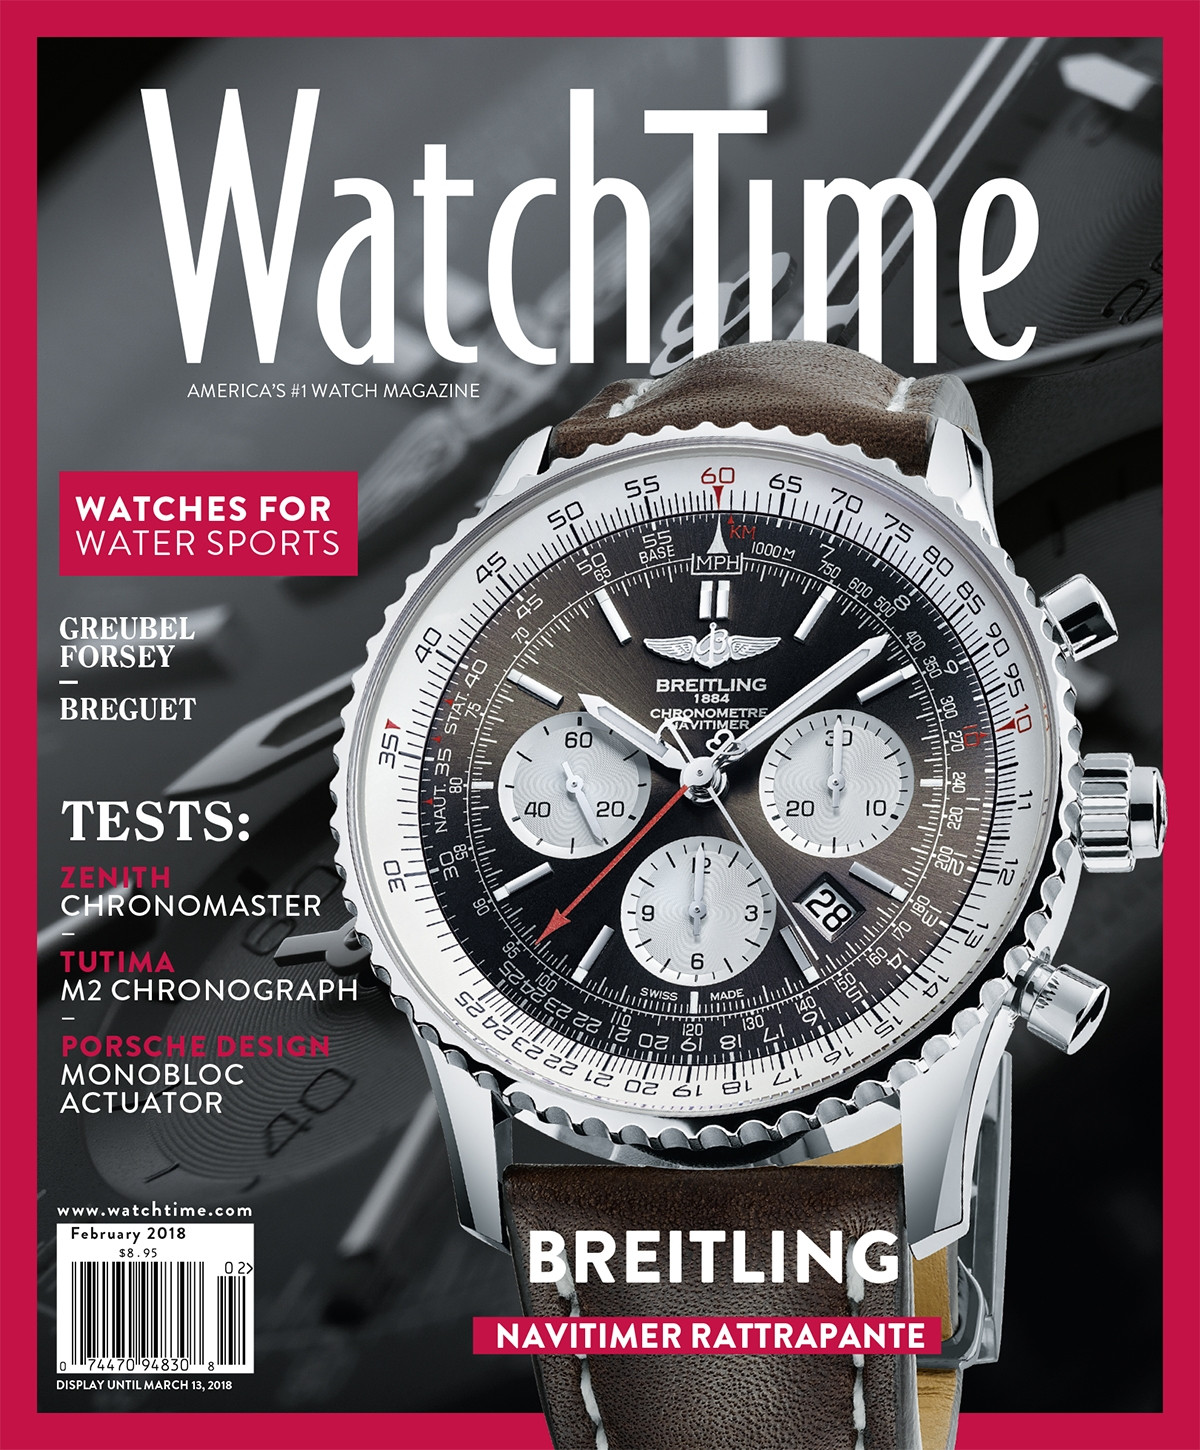 WatchTime February 2018: Watches for Water Sports, Breitling Navitimer Rattrapante, Greubel Forsey, Breguet, Zenith Chronomaster, Tutima M2 Chronograph, Porsche Design Monobloc Actuator